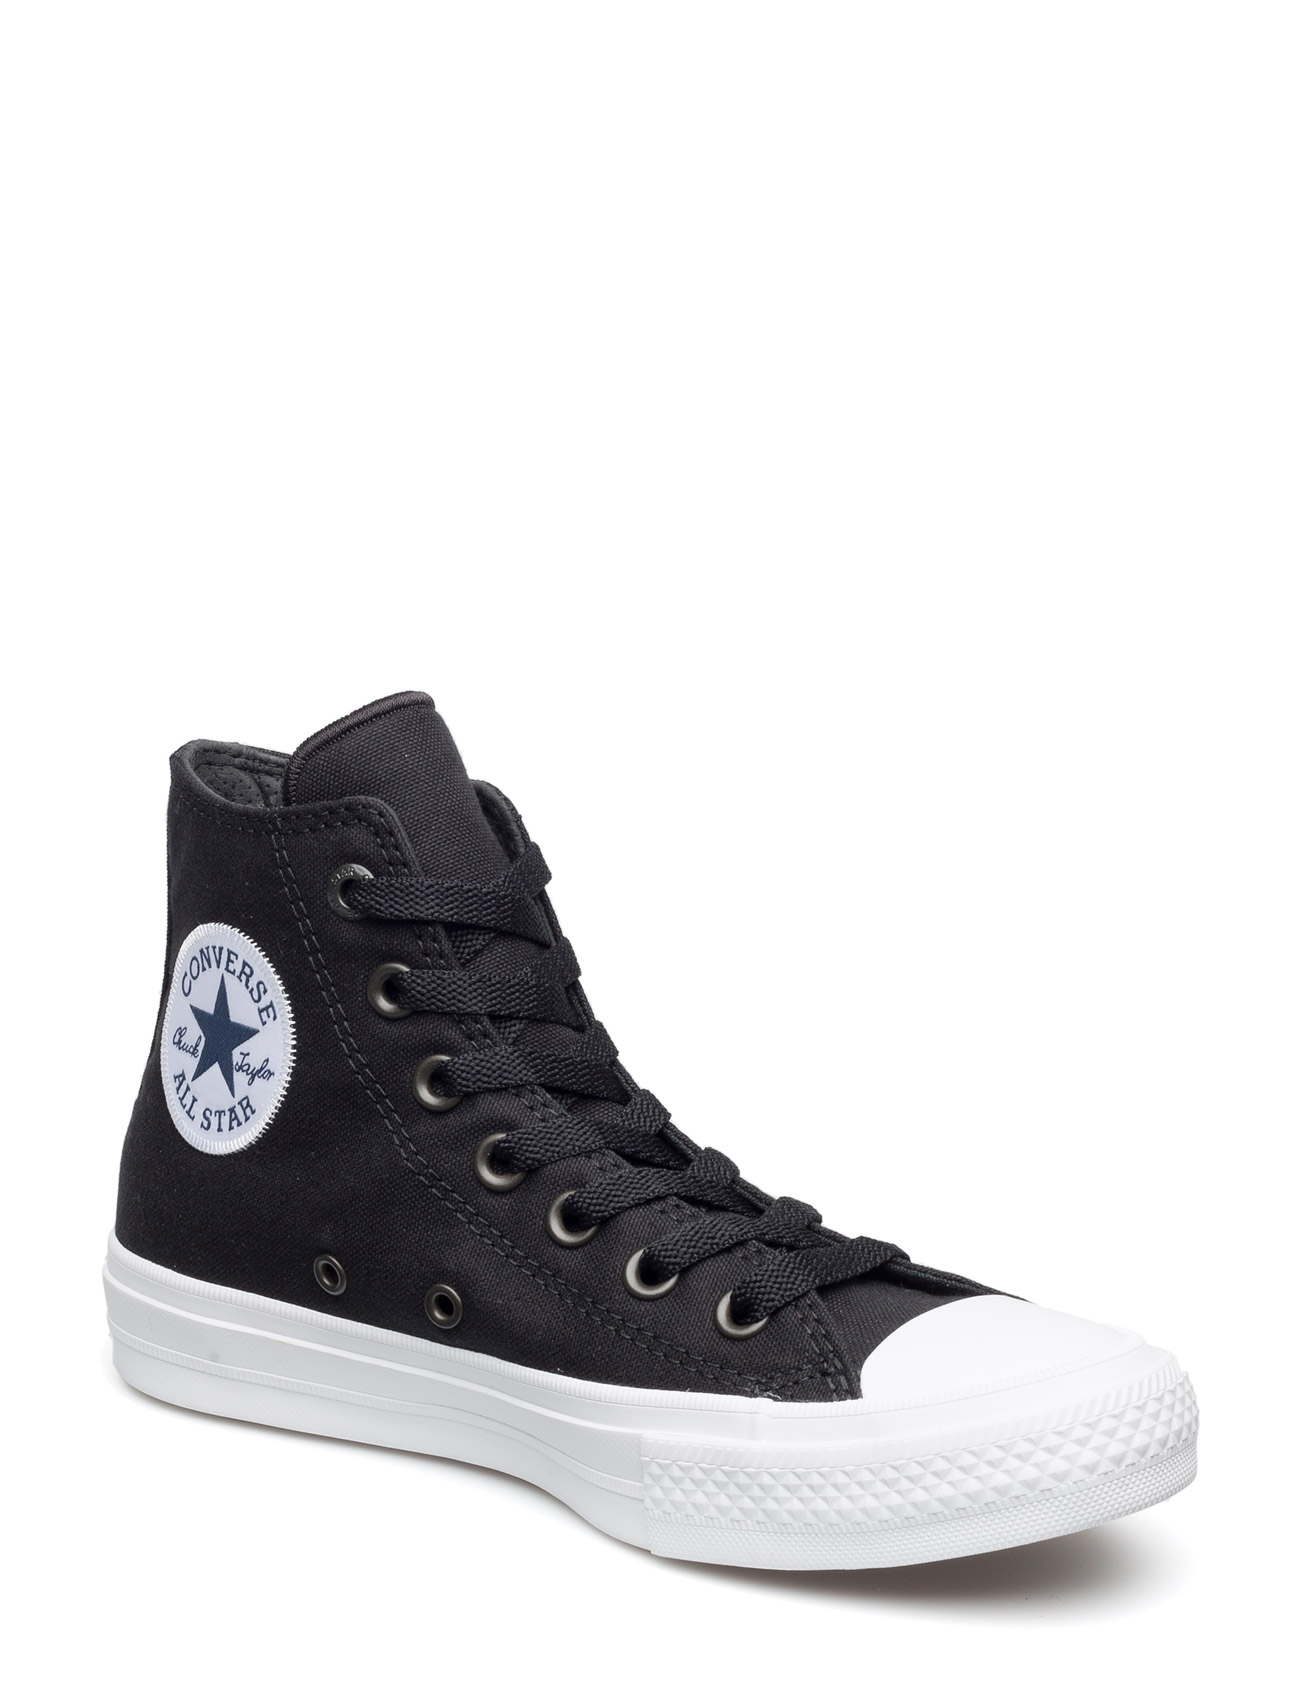 Ct Ii Hi Black/White/Navy